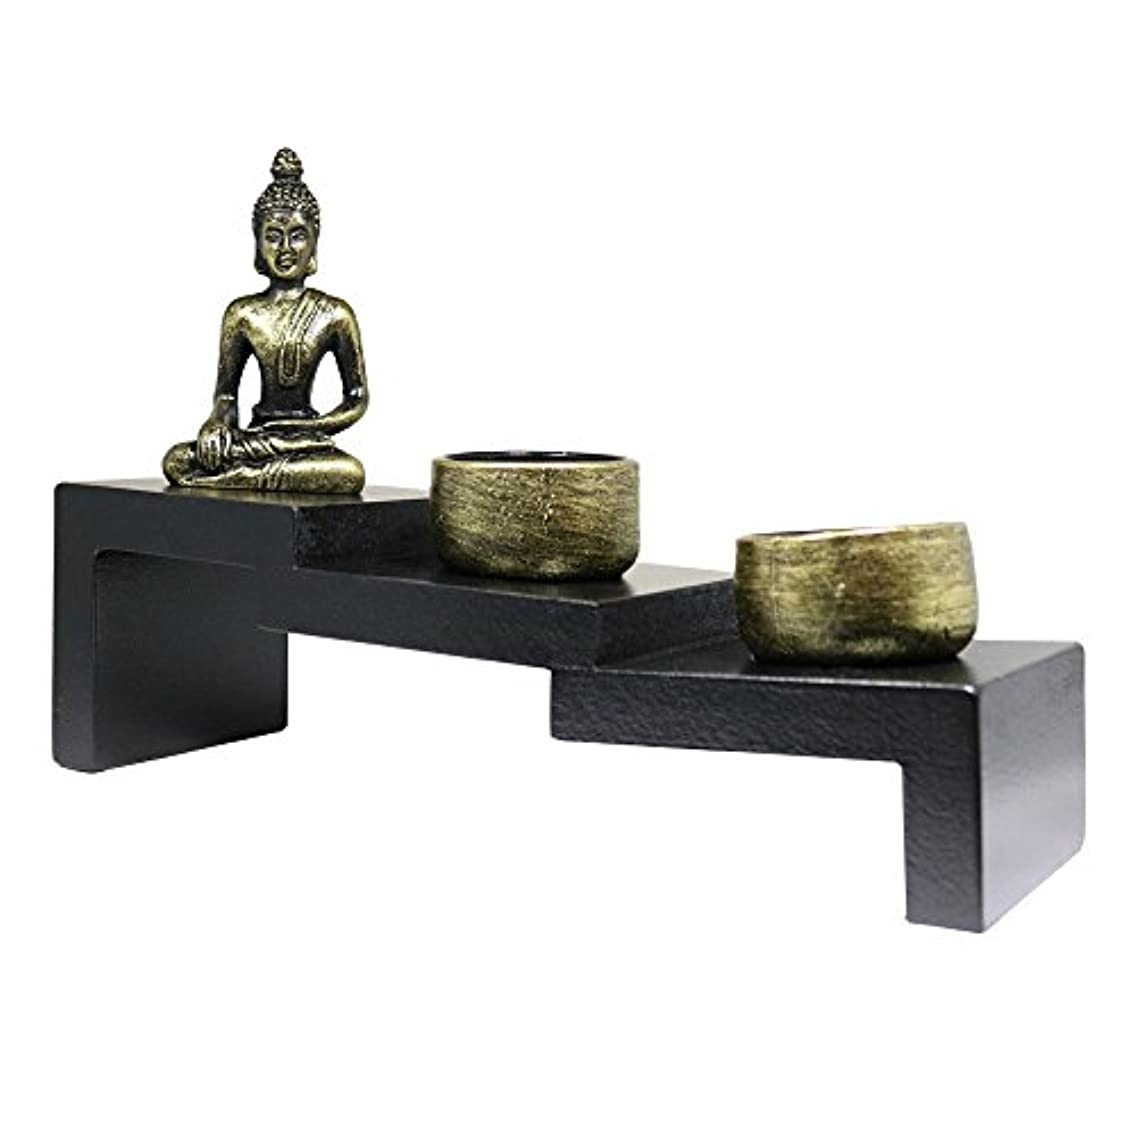 (Buddha Stairs) - Tabletop Incense Burner Gifts & Decor Zen Garden Kit with Statue Candle Holder USA SELLER (Buddha...